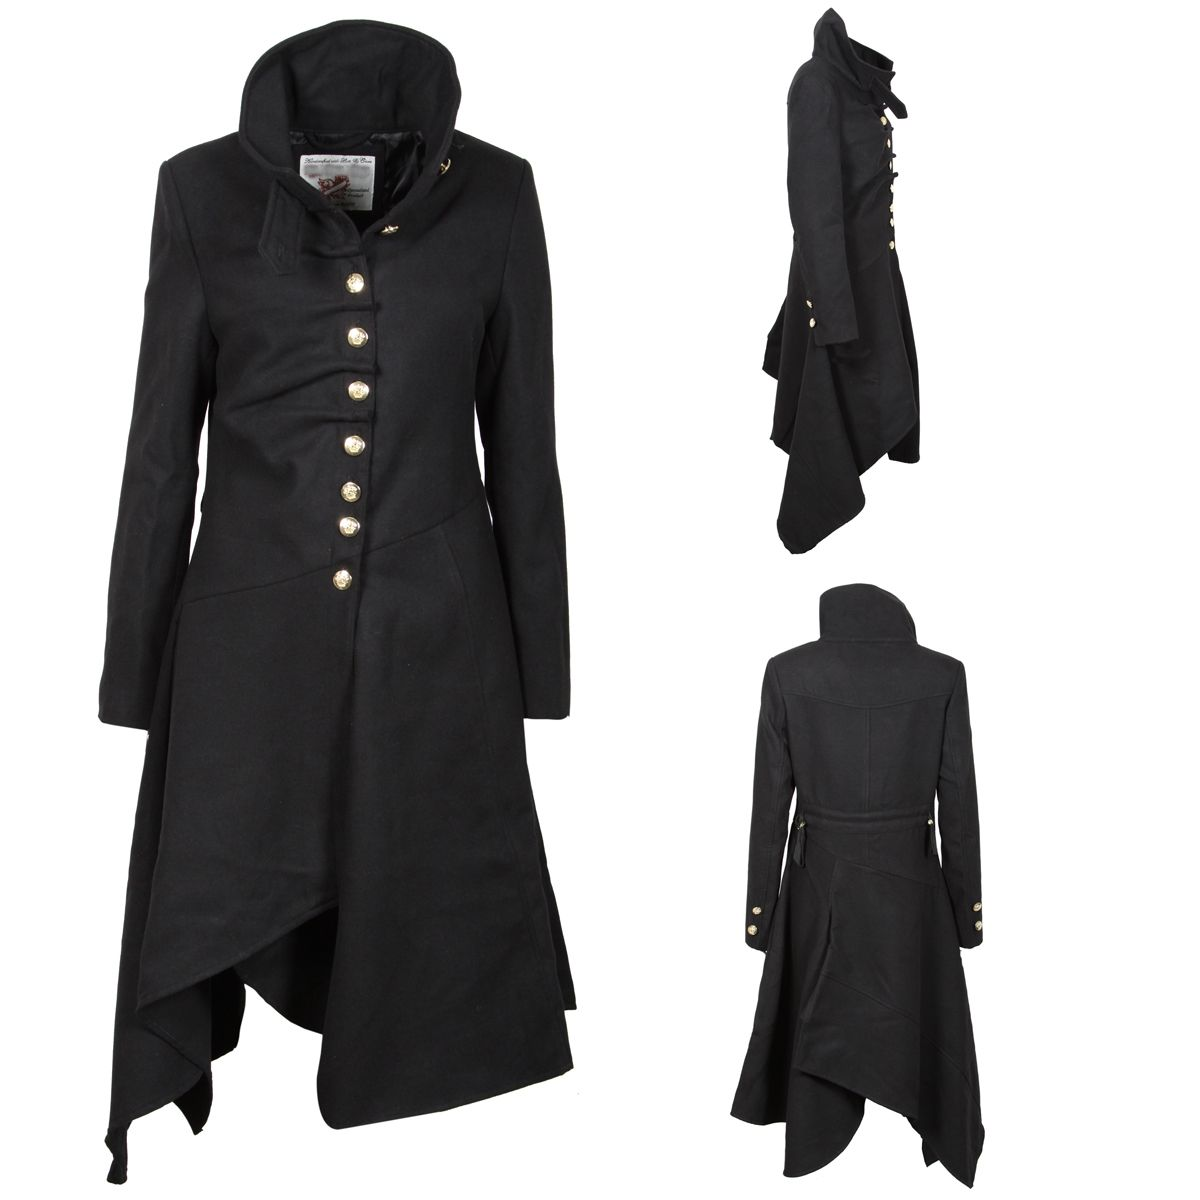 612f665a8 Details about NEW WOMENS BLACK STRUCTURED MILITARY GOTH GOTHIC COAT ...